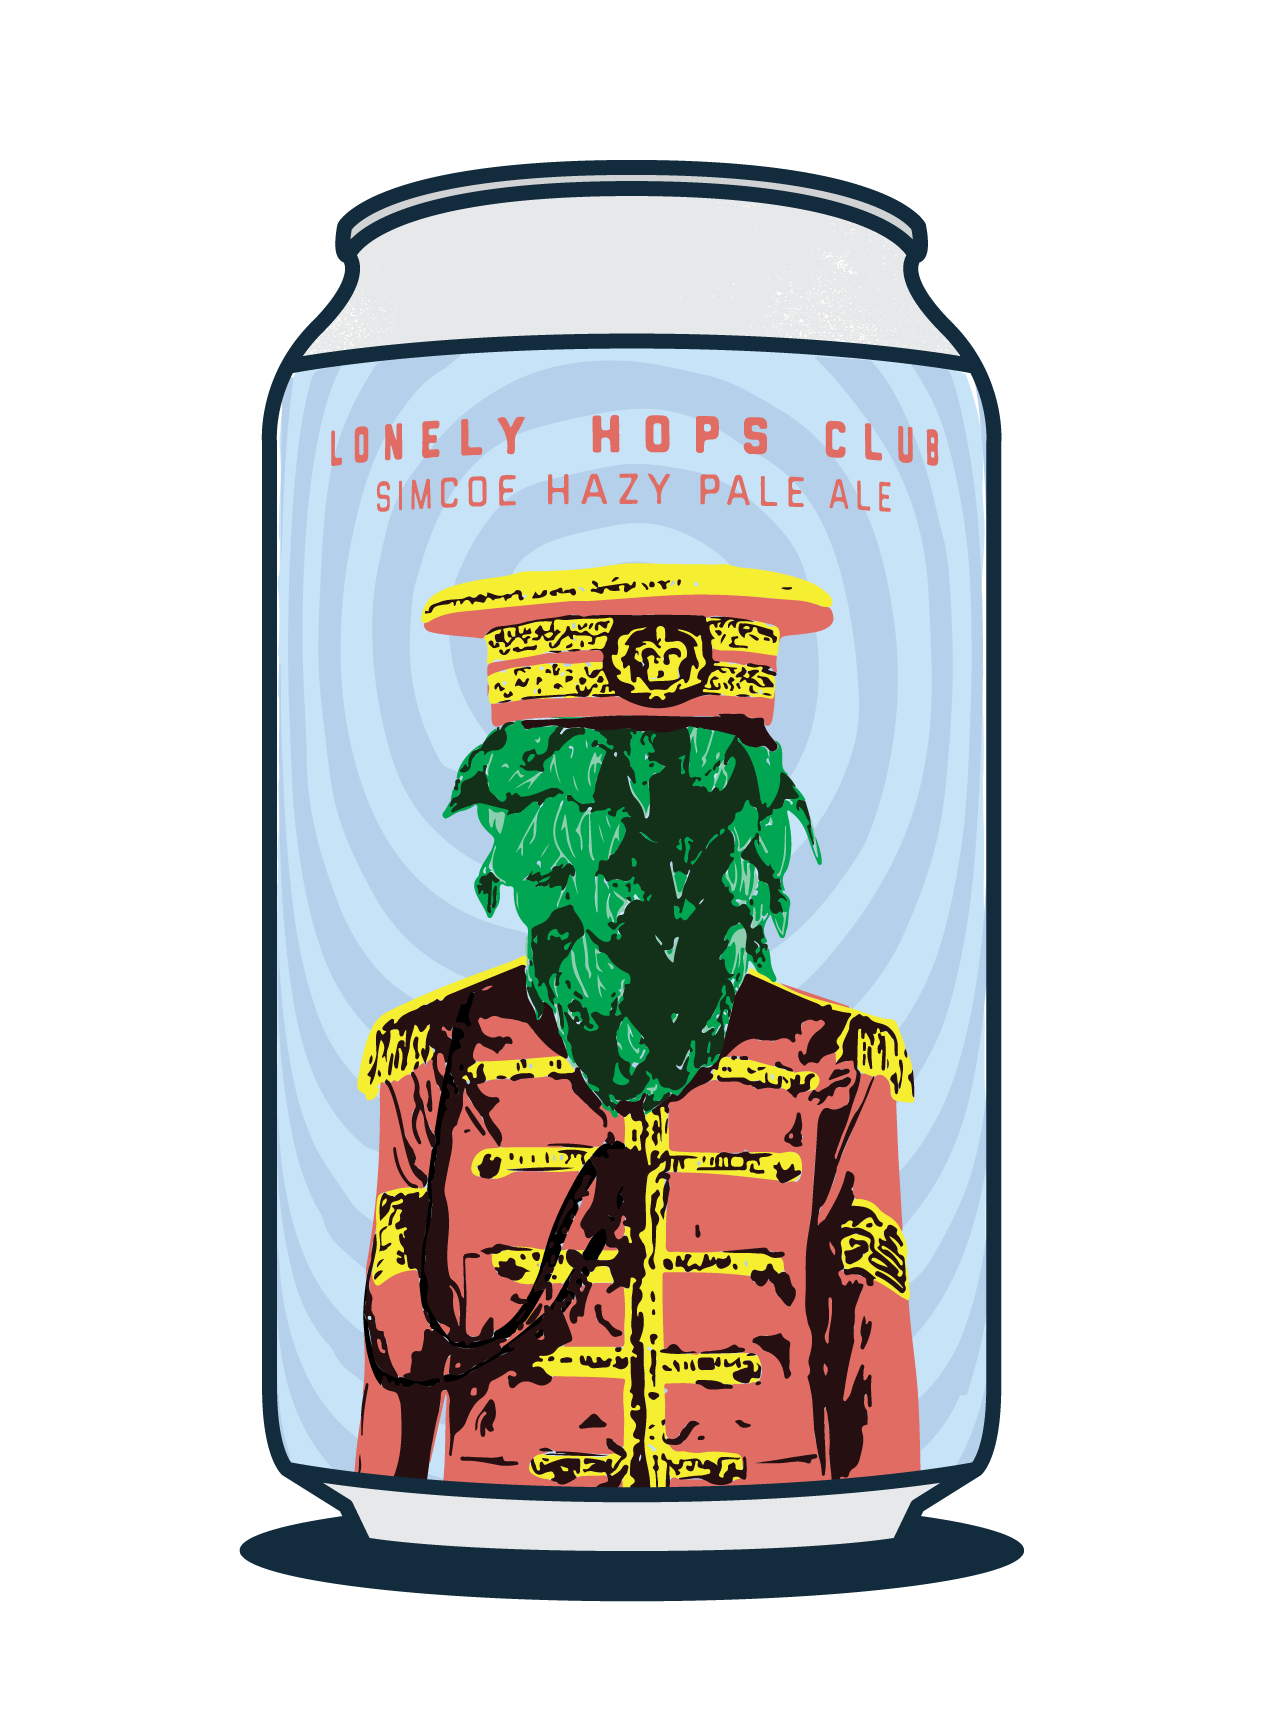 Lonely Hops Club - Simcoe Hazy Pale Image